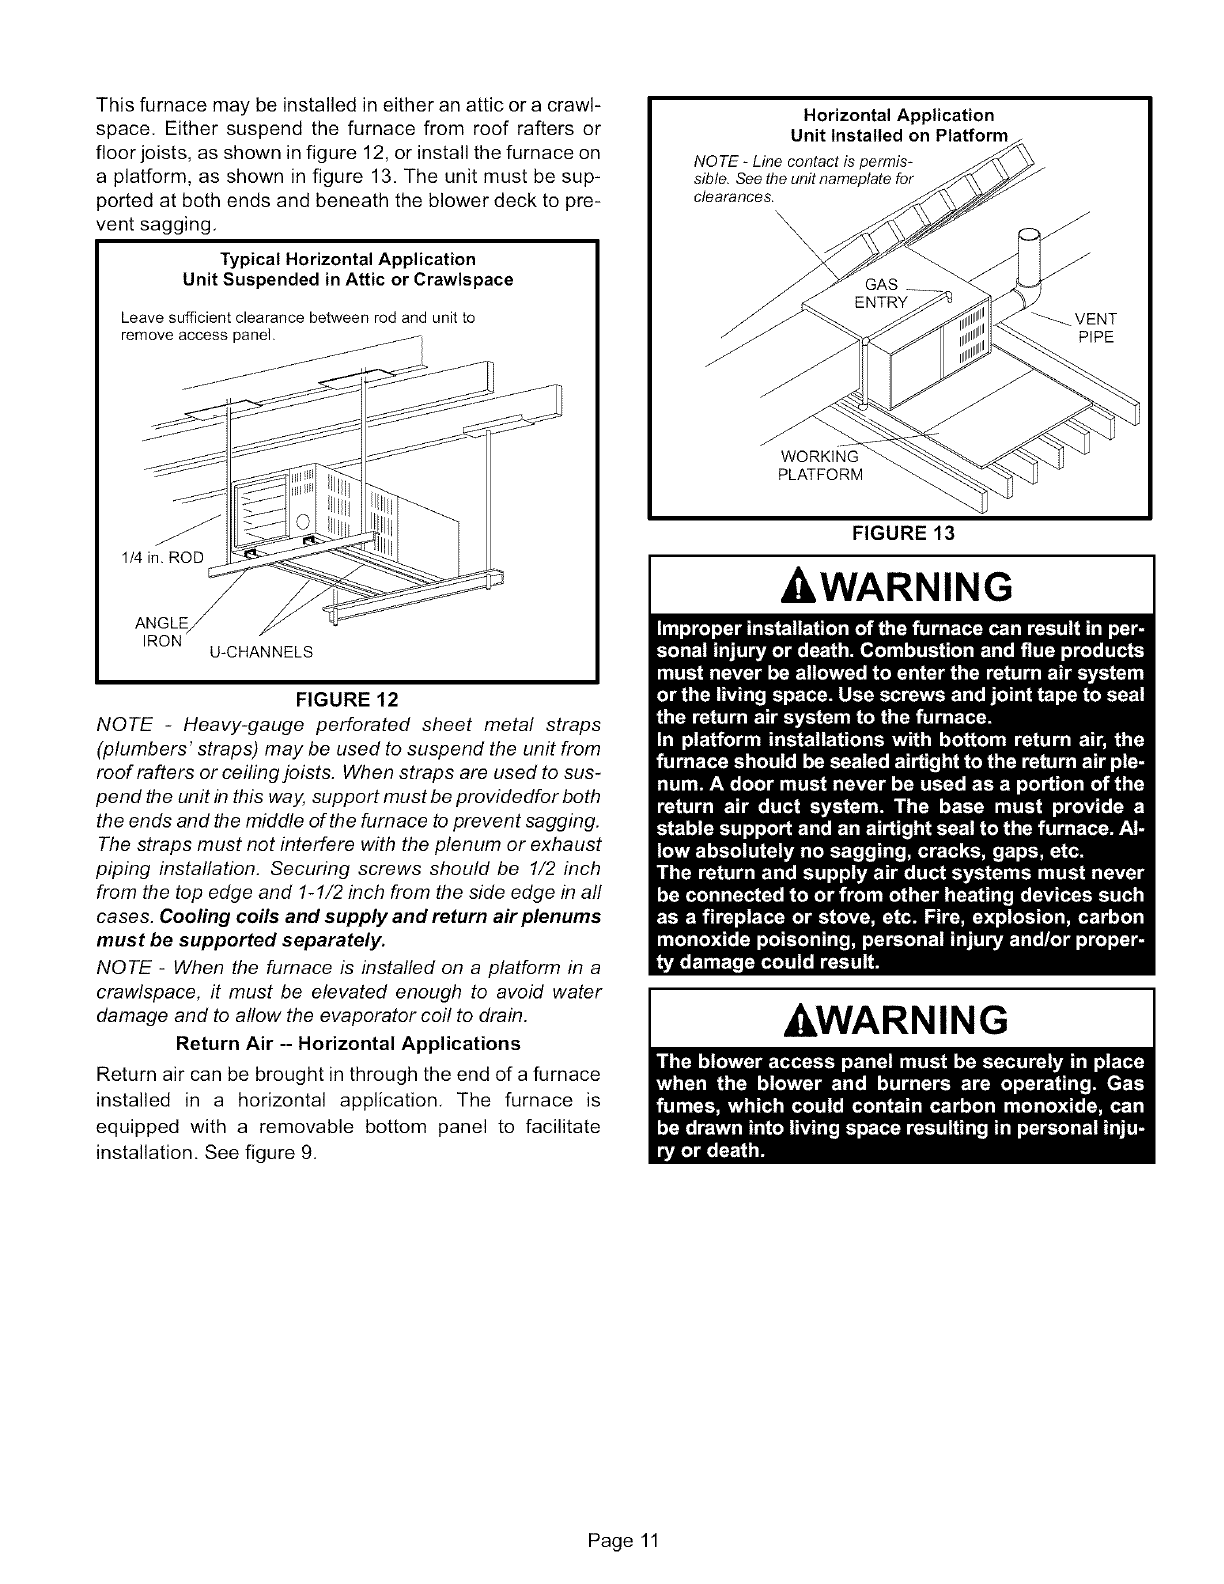 Page 11 of Lennox International Inc. Furnace G50UH-36A-070